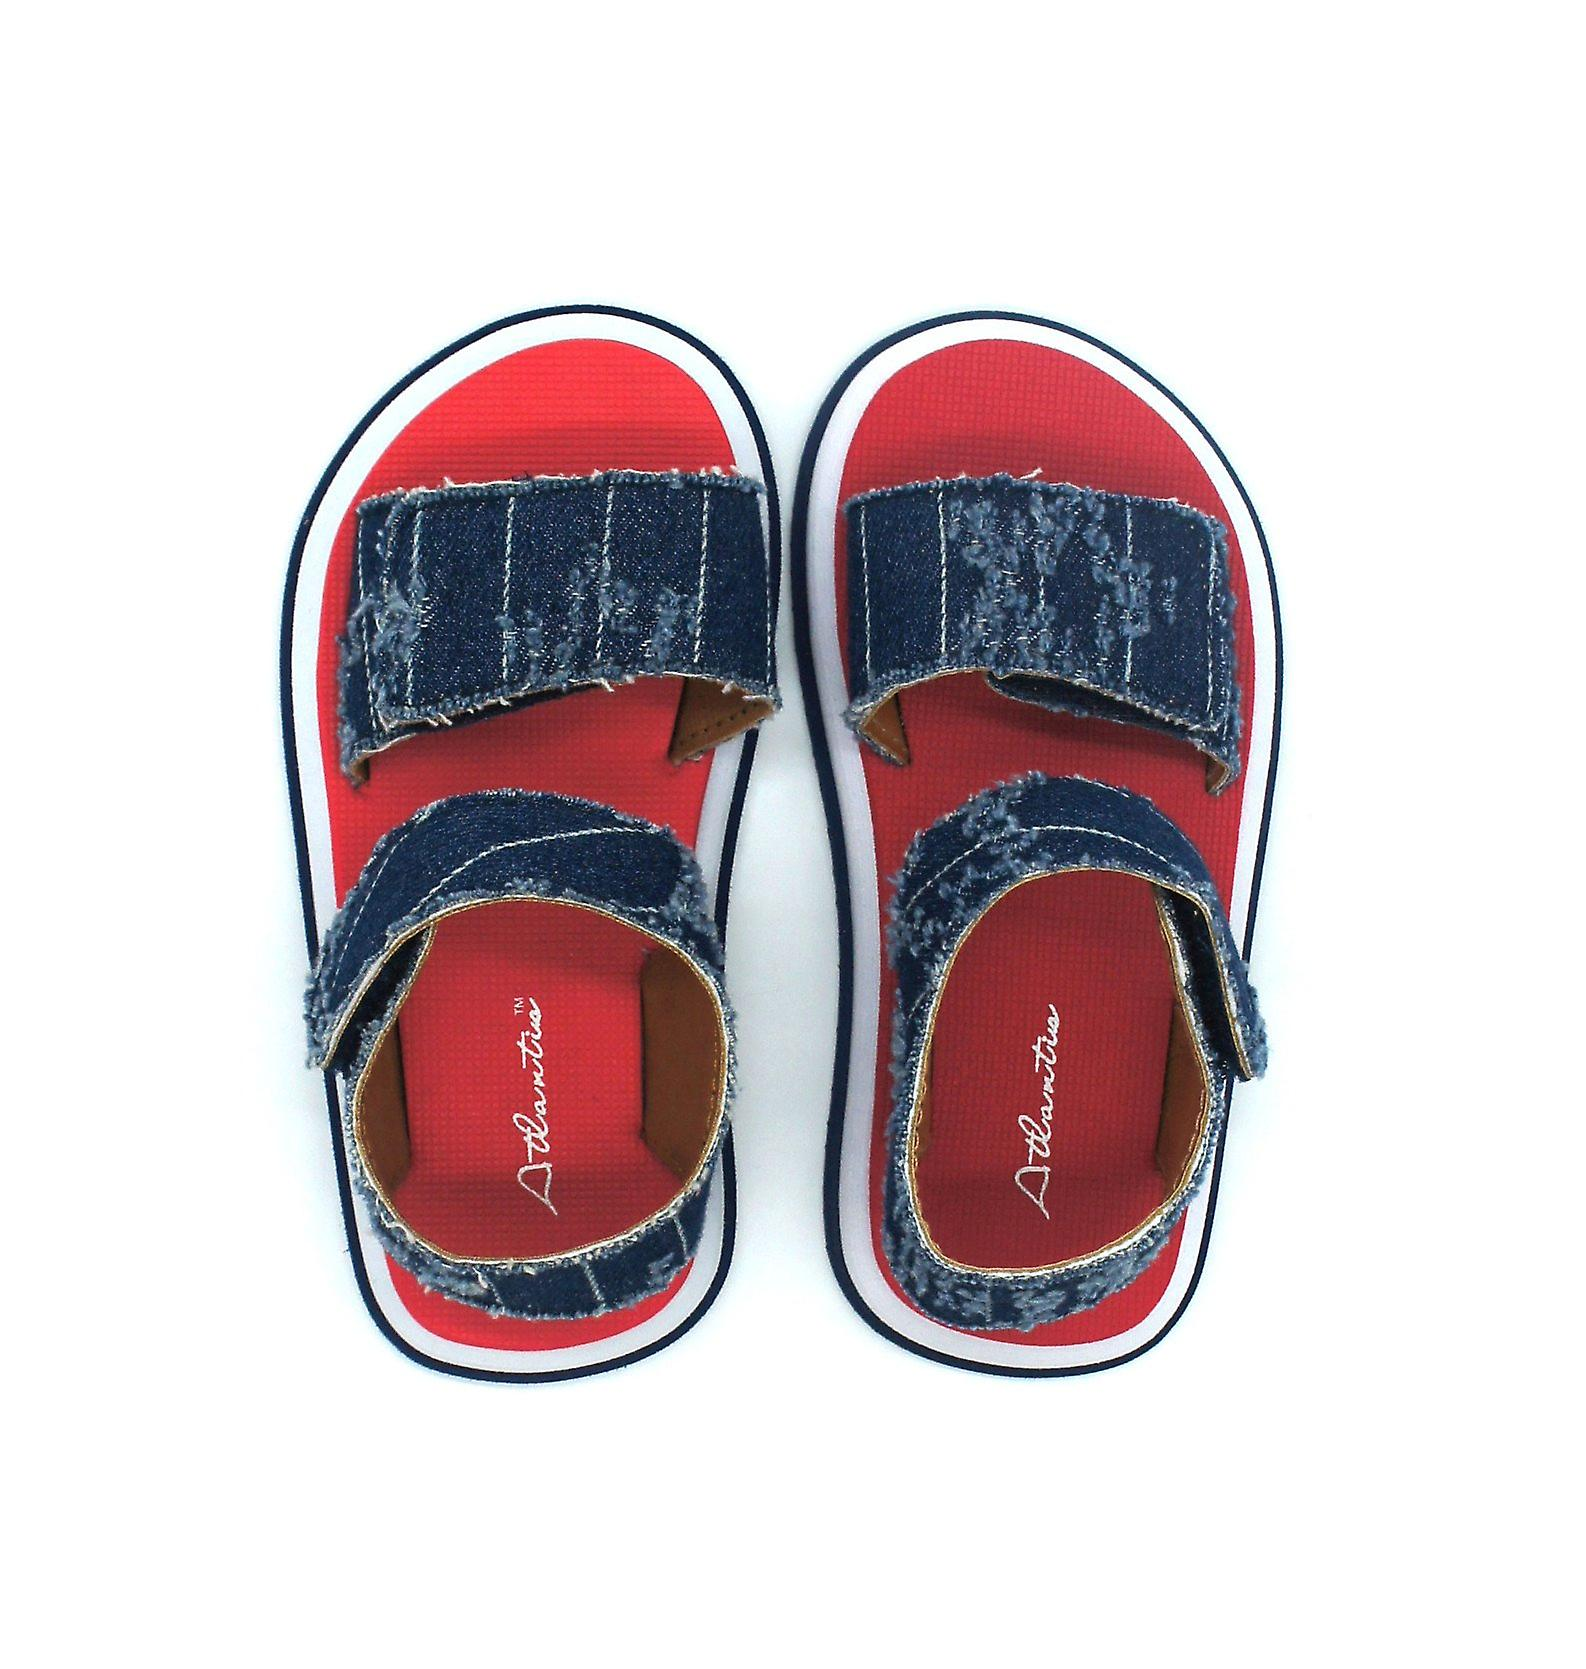 Atlantis Shoes Kids Unisex Girls & Boys Supportive Cushioned Comfortable Sandals Cowboy Red